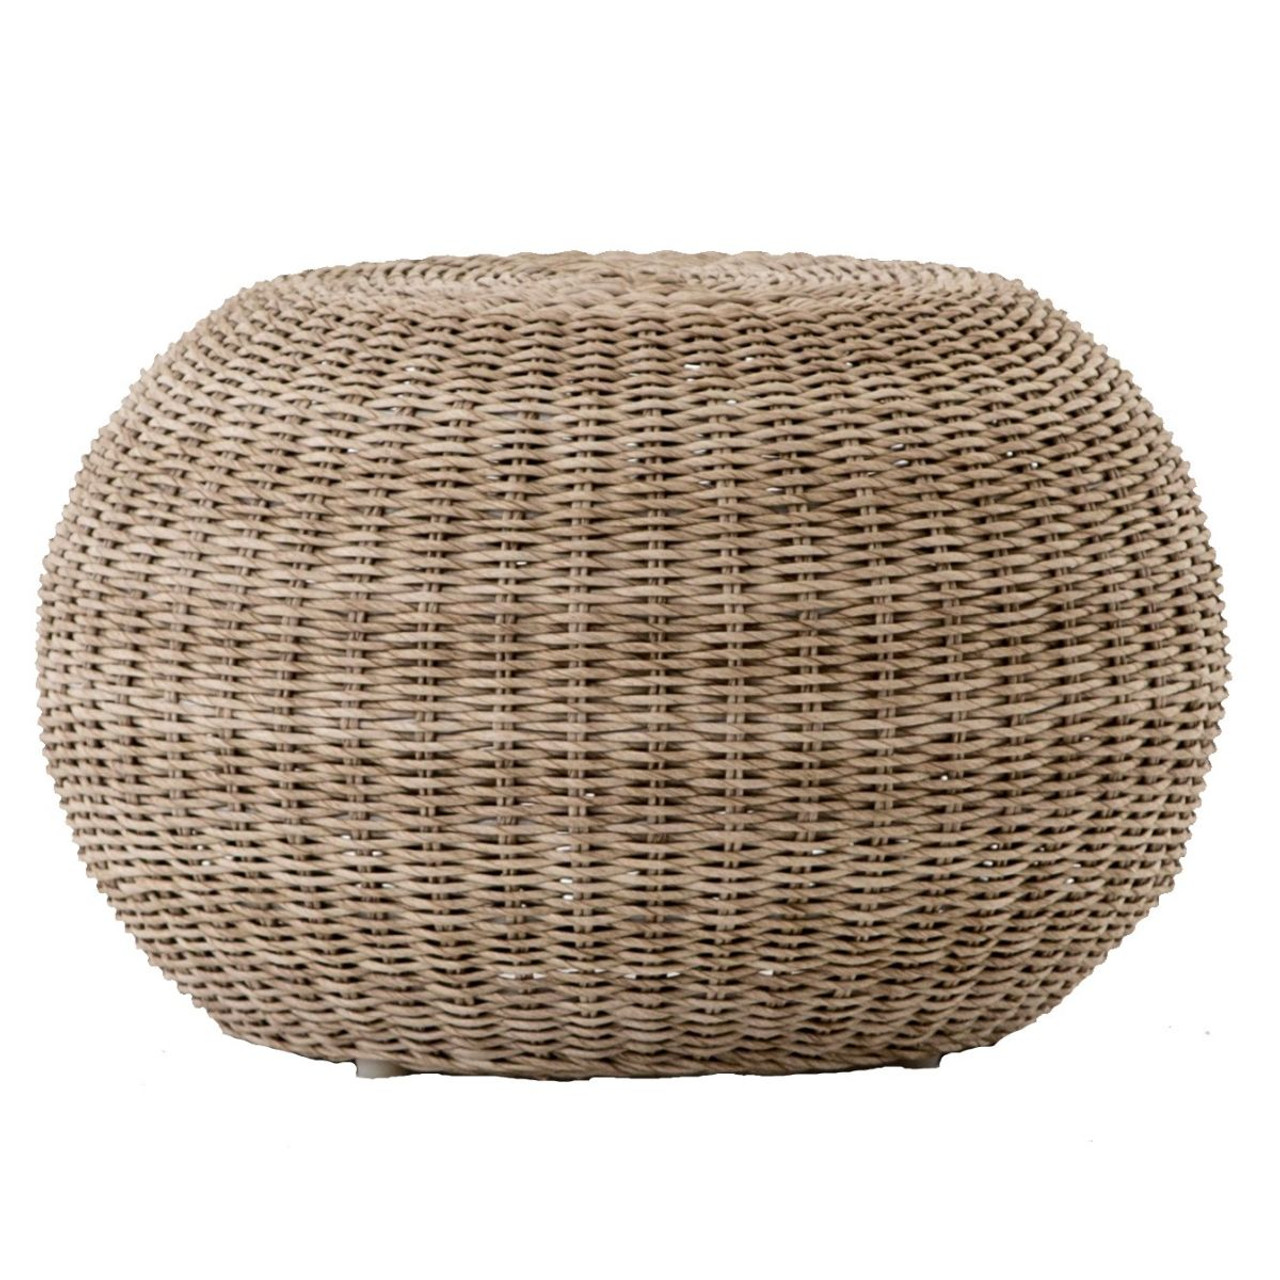 Pascal Vintage White Woven Wicker Round Stool Ottoman Zin Home Fourhands